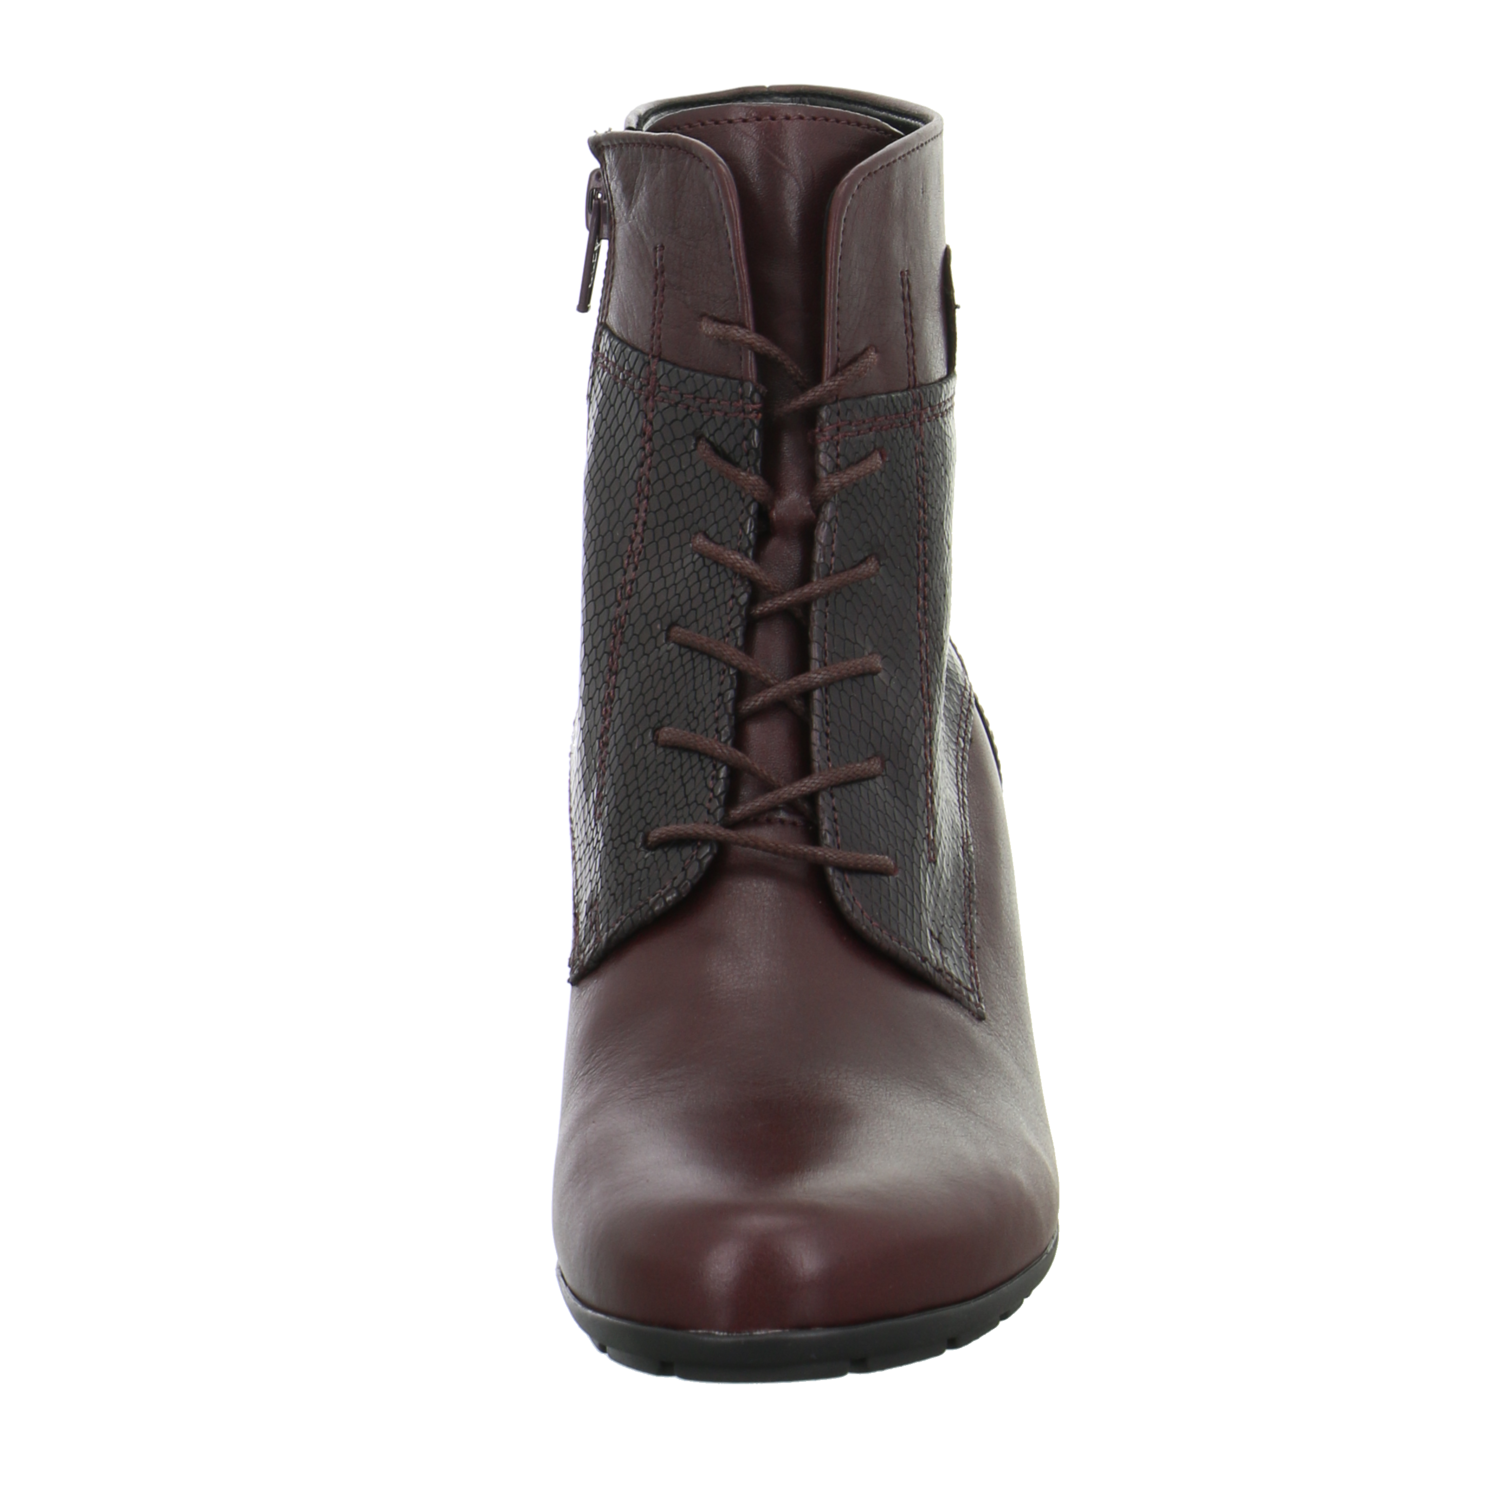 Gabor Damen Stiefeletten Stiefeletten Stiefeletten 5564420 rot 180678 ee5912